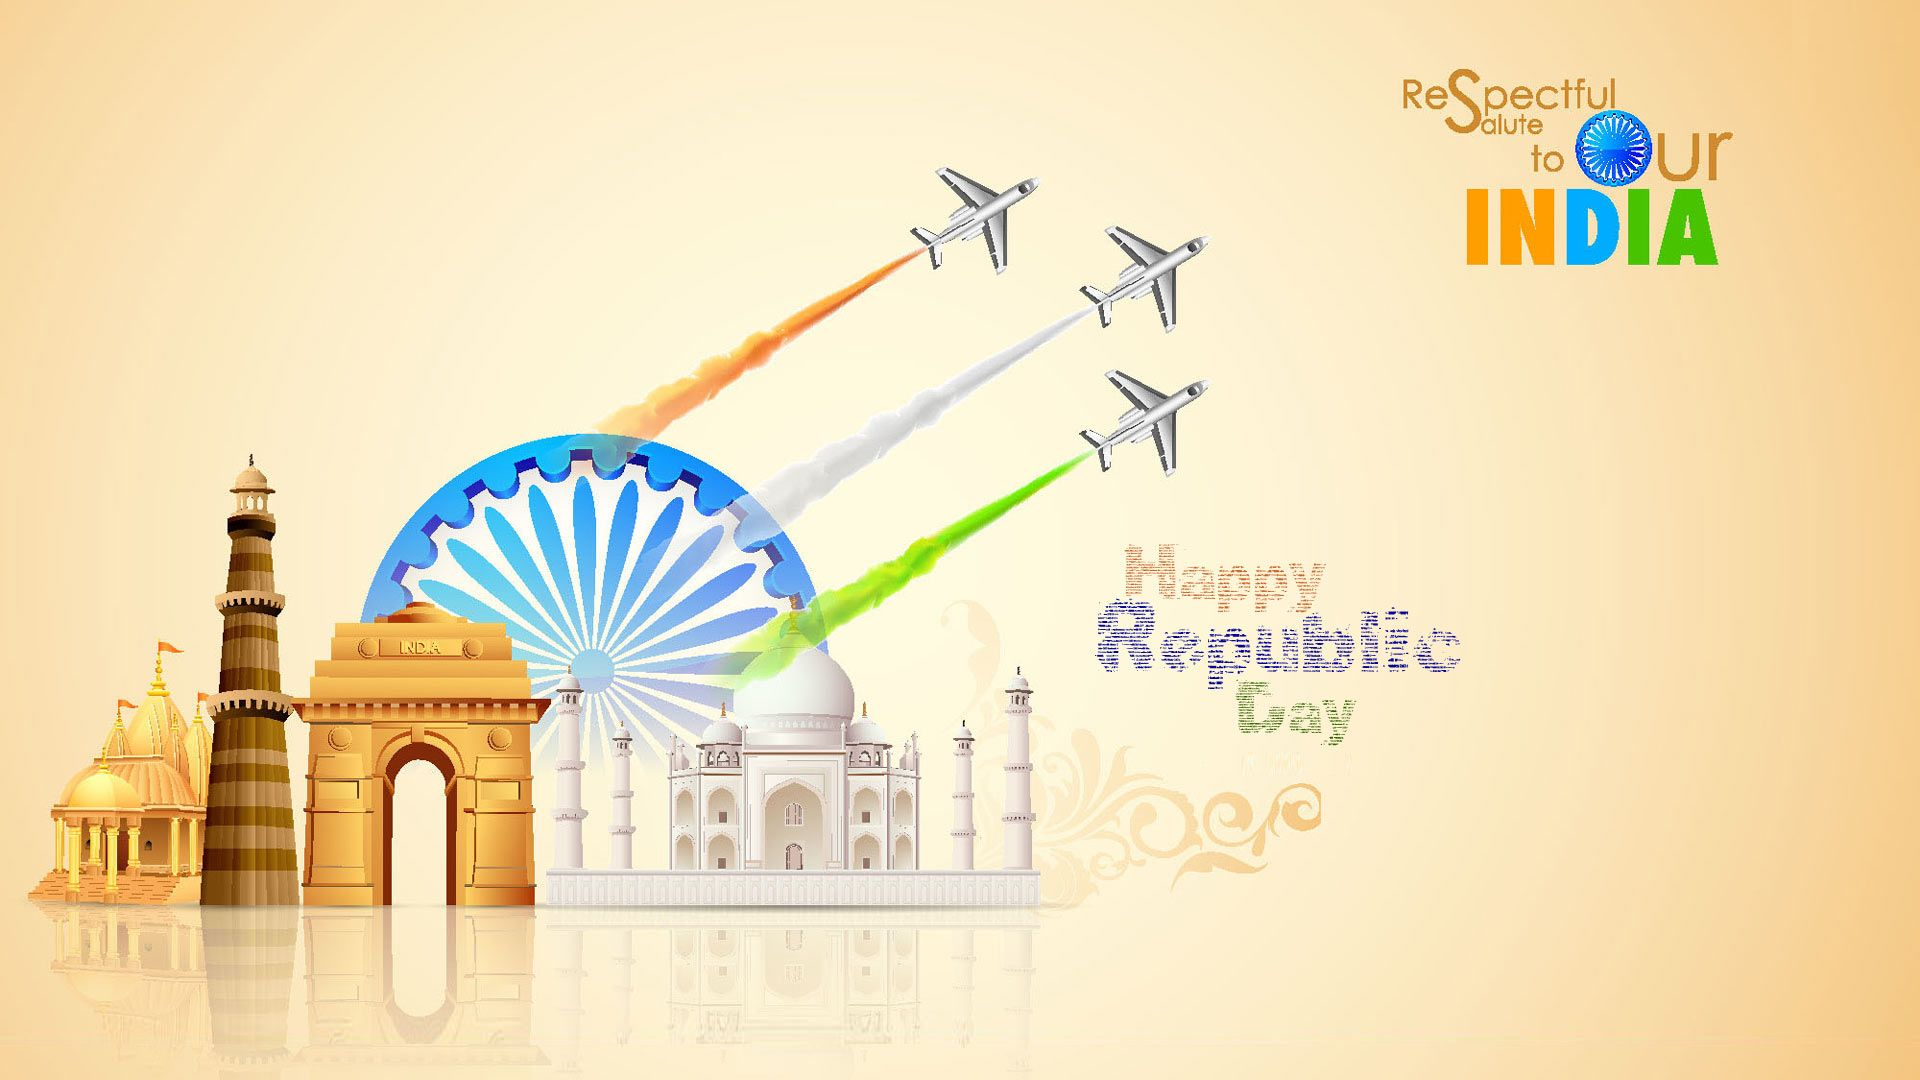 Republic Day 2021 Wallpapers Wallpaper Cave 26 january 2021 india gate ticket